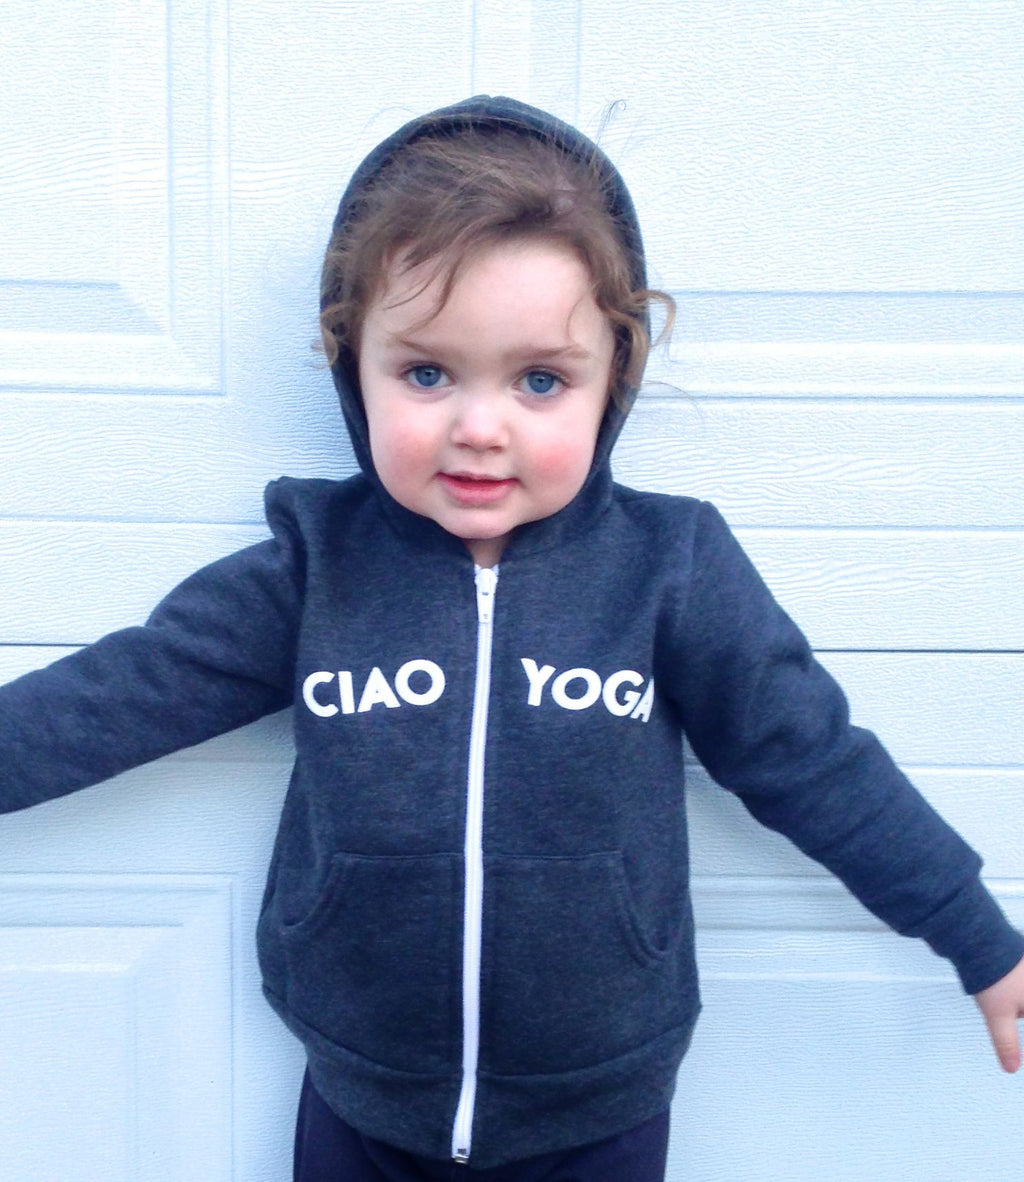 Kids Ciao Yoga Hoodie In Charcoal - Final Sale!